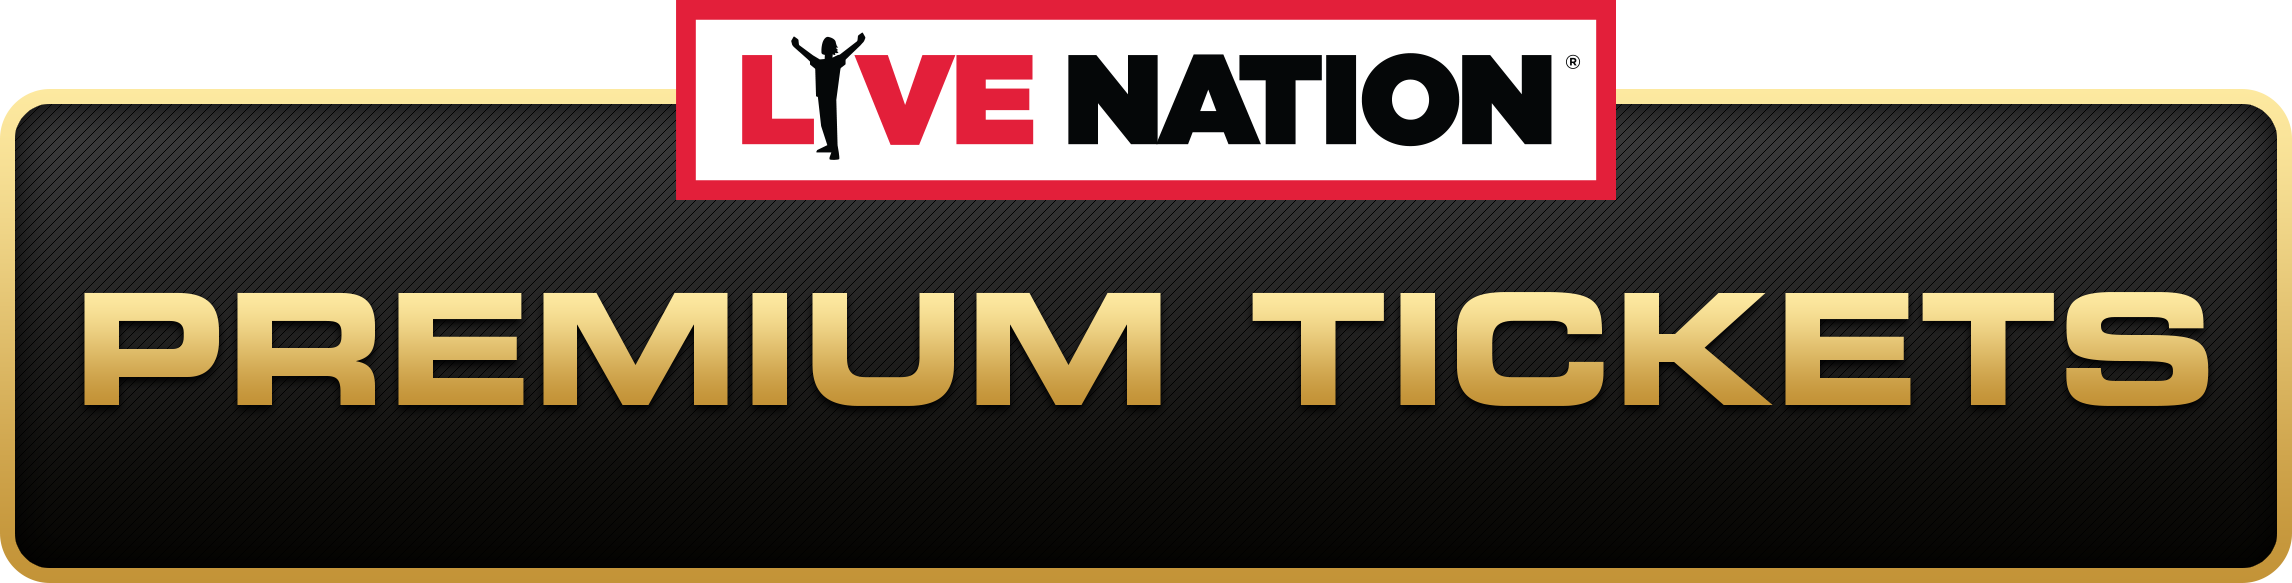 Live Nation Premium Tickets